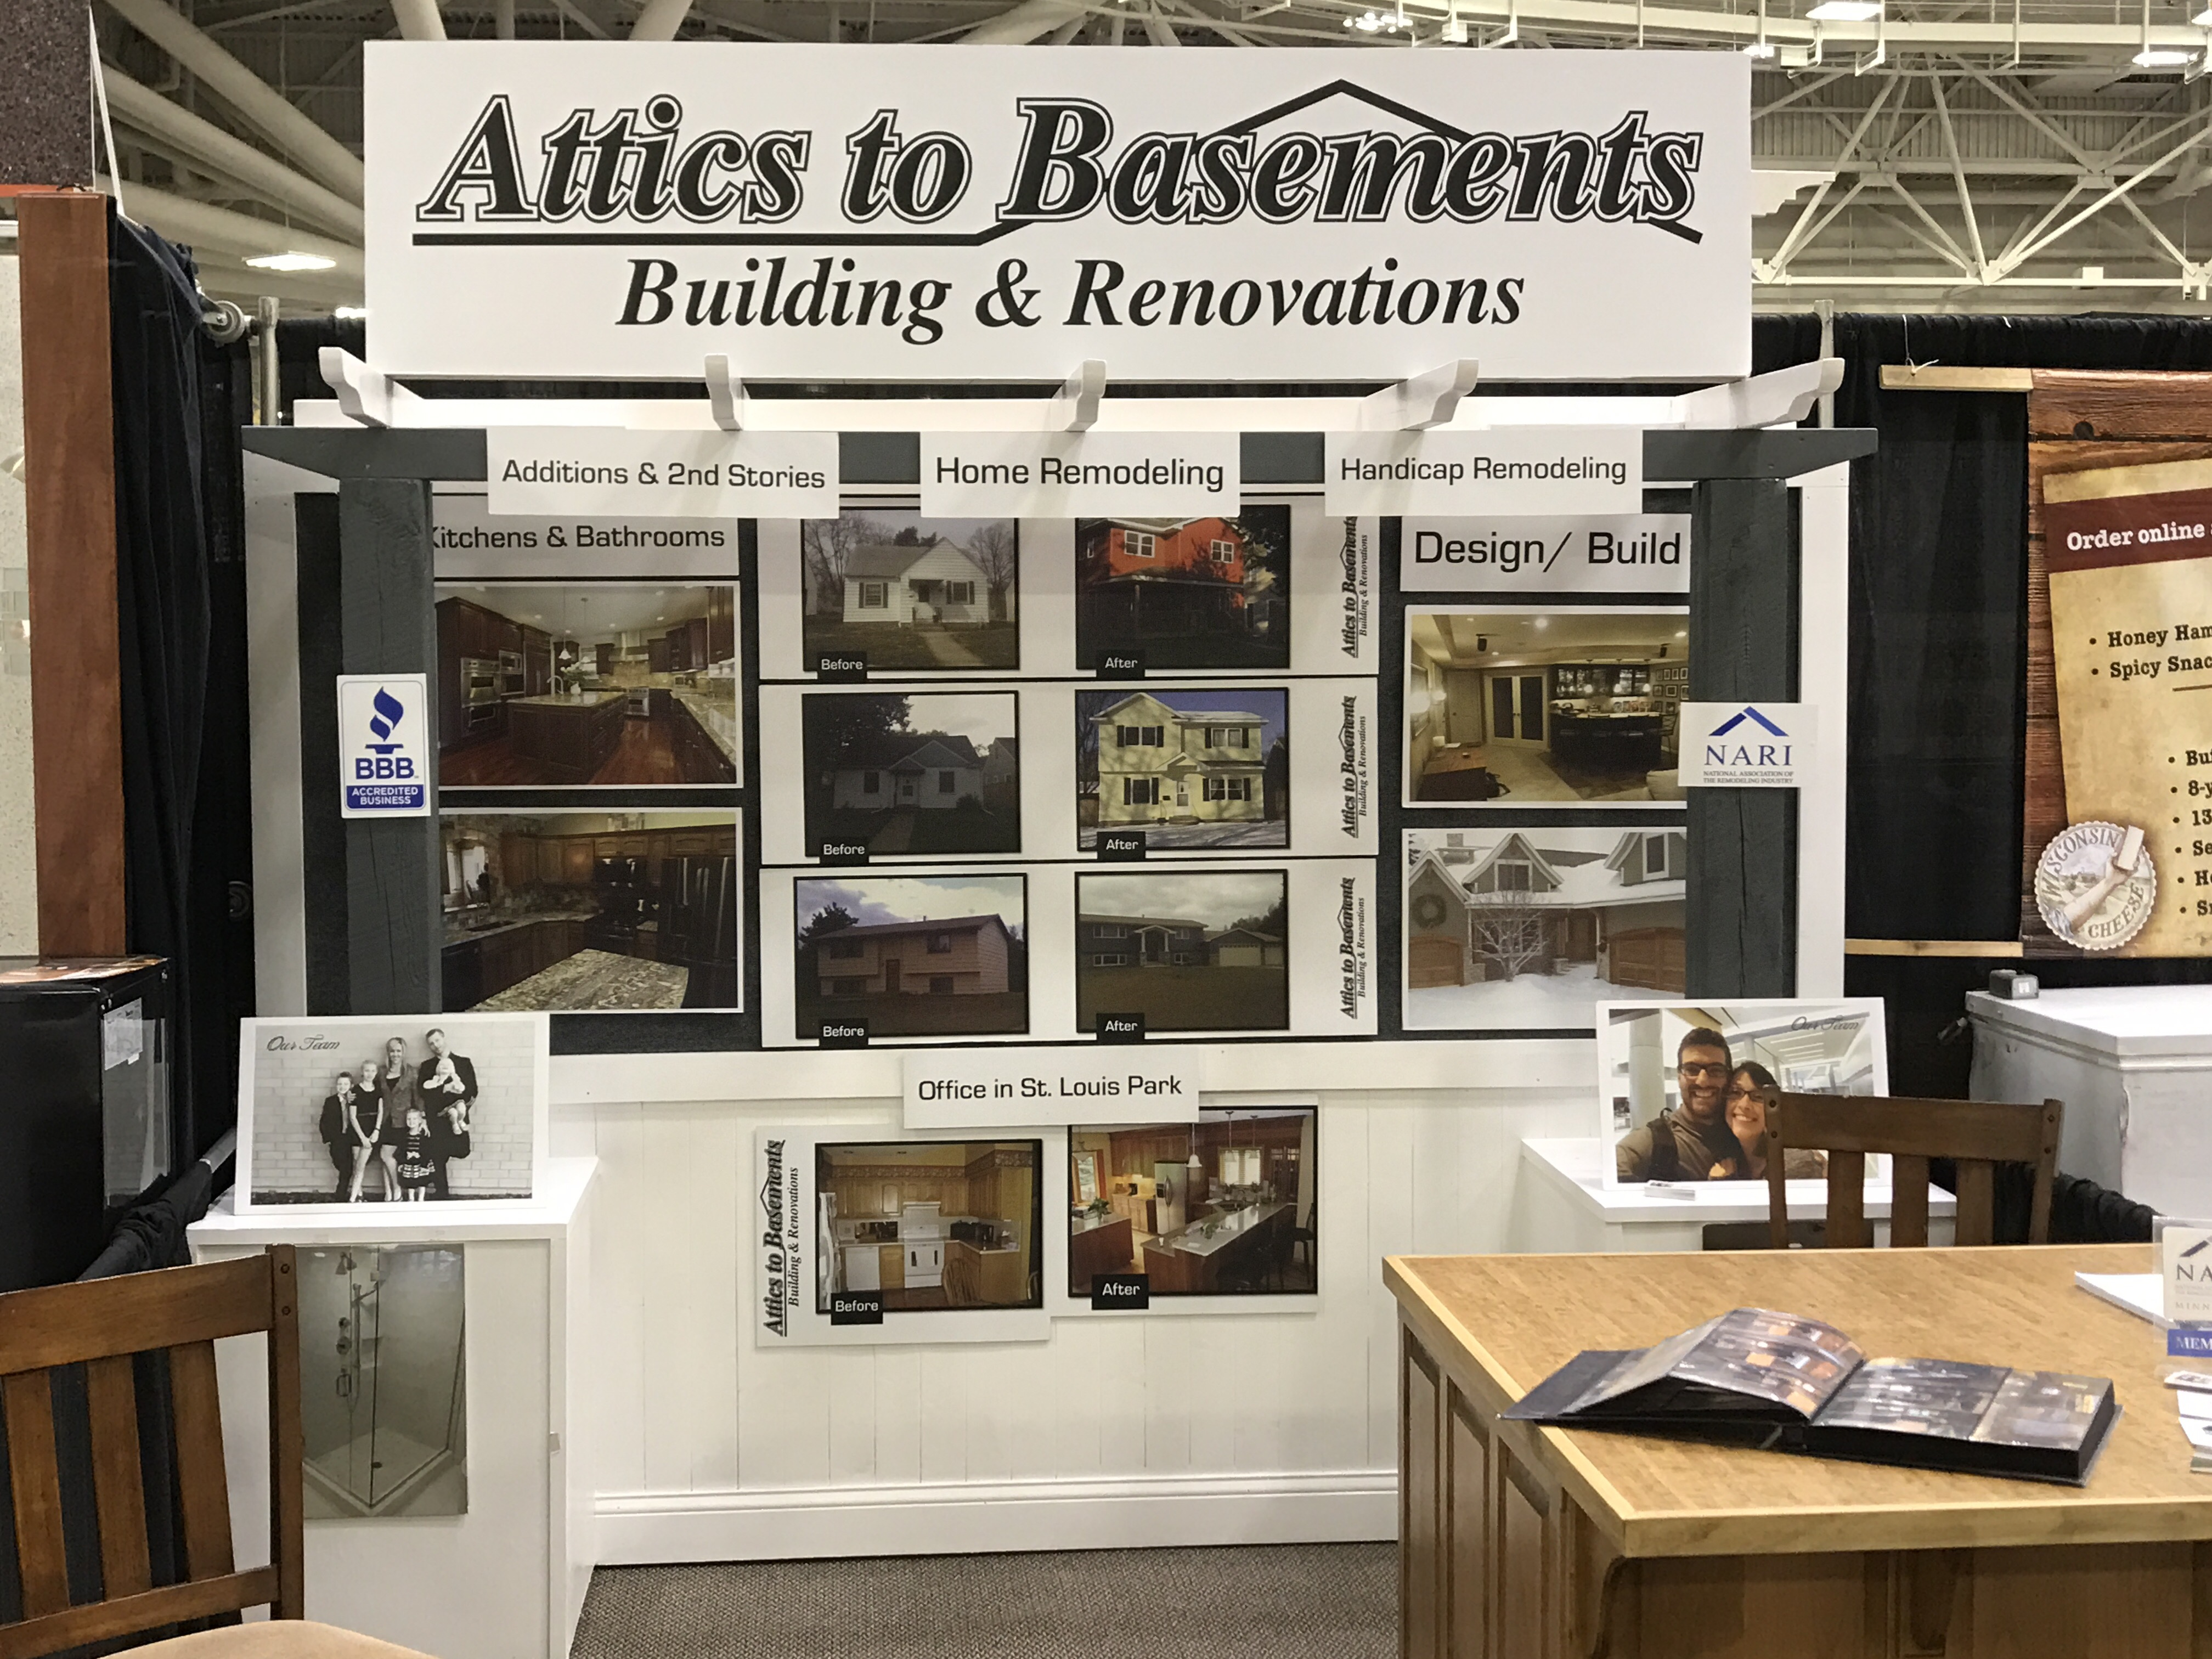 We Have Done This Show For 9 Years And Have Meet 100u0027s Of Wonderful  Customers. Please Visit Our Website Minneapolis Home Remodeling For More  Information!!!